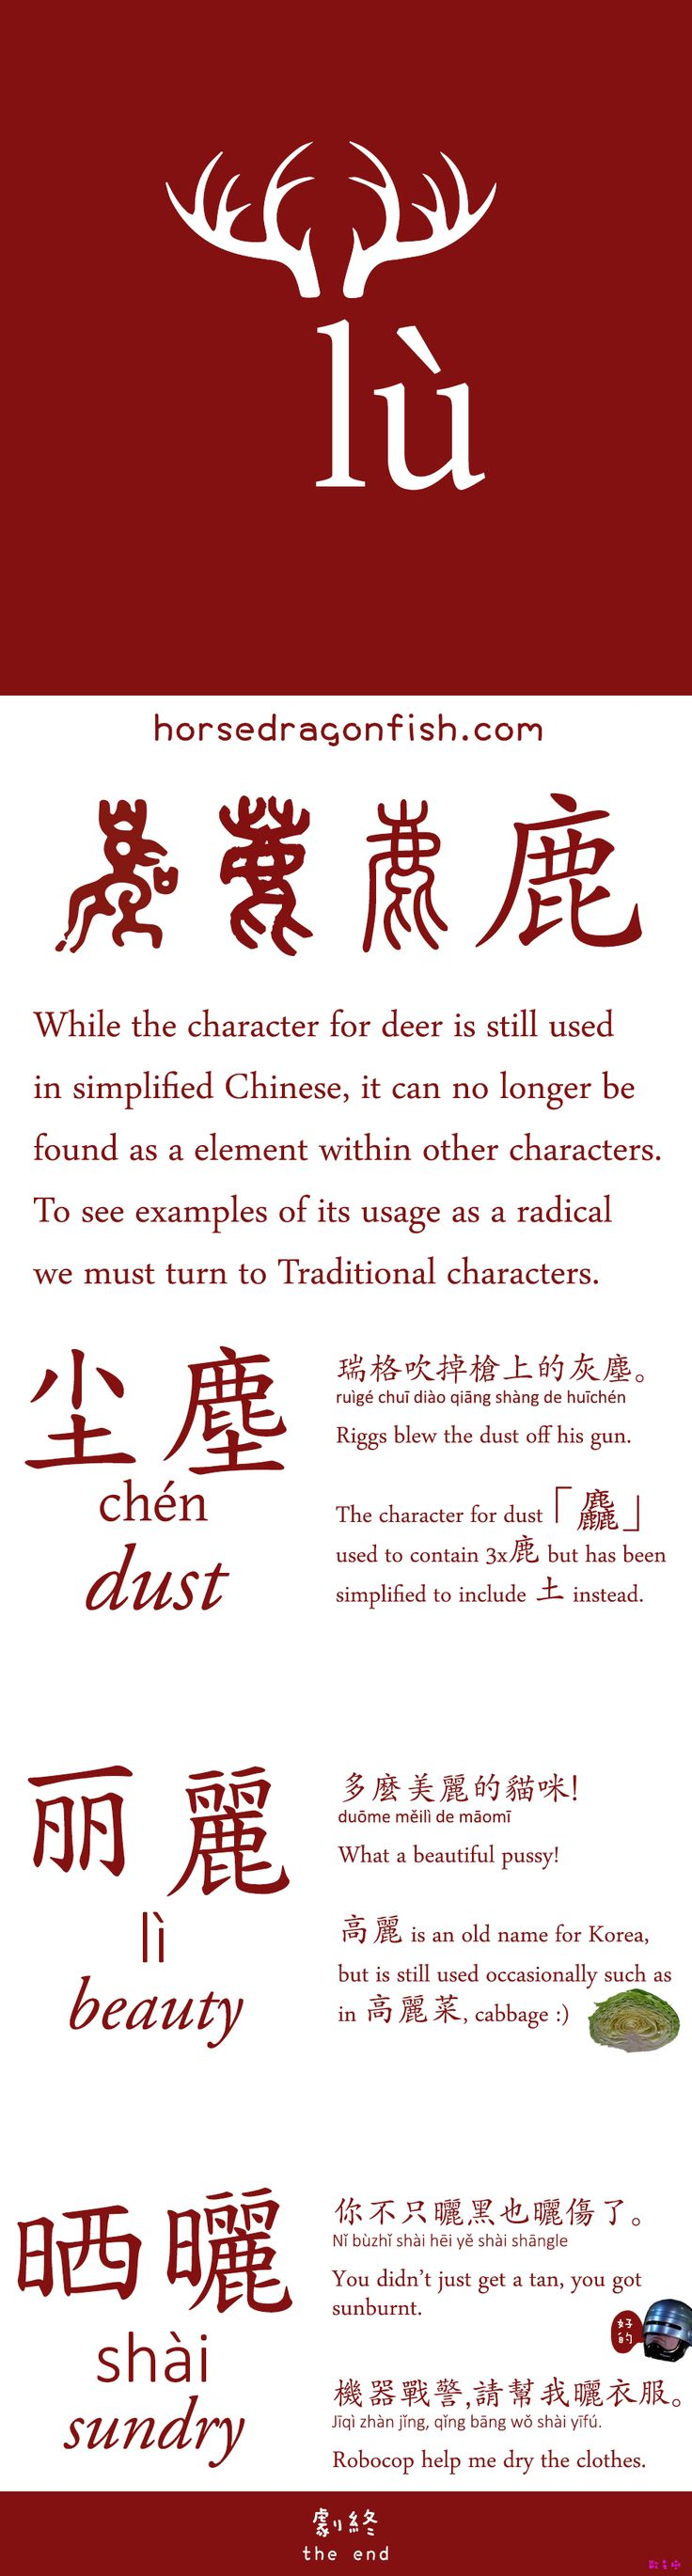 The Chinese Character for Deer